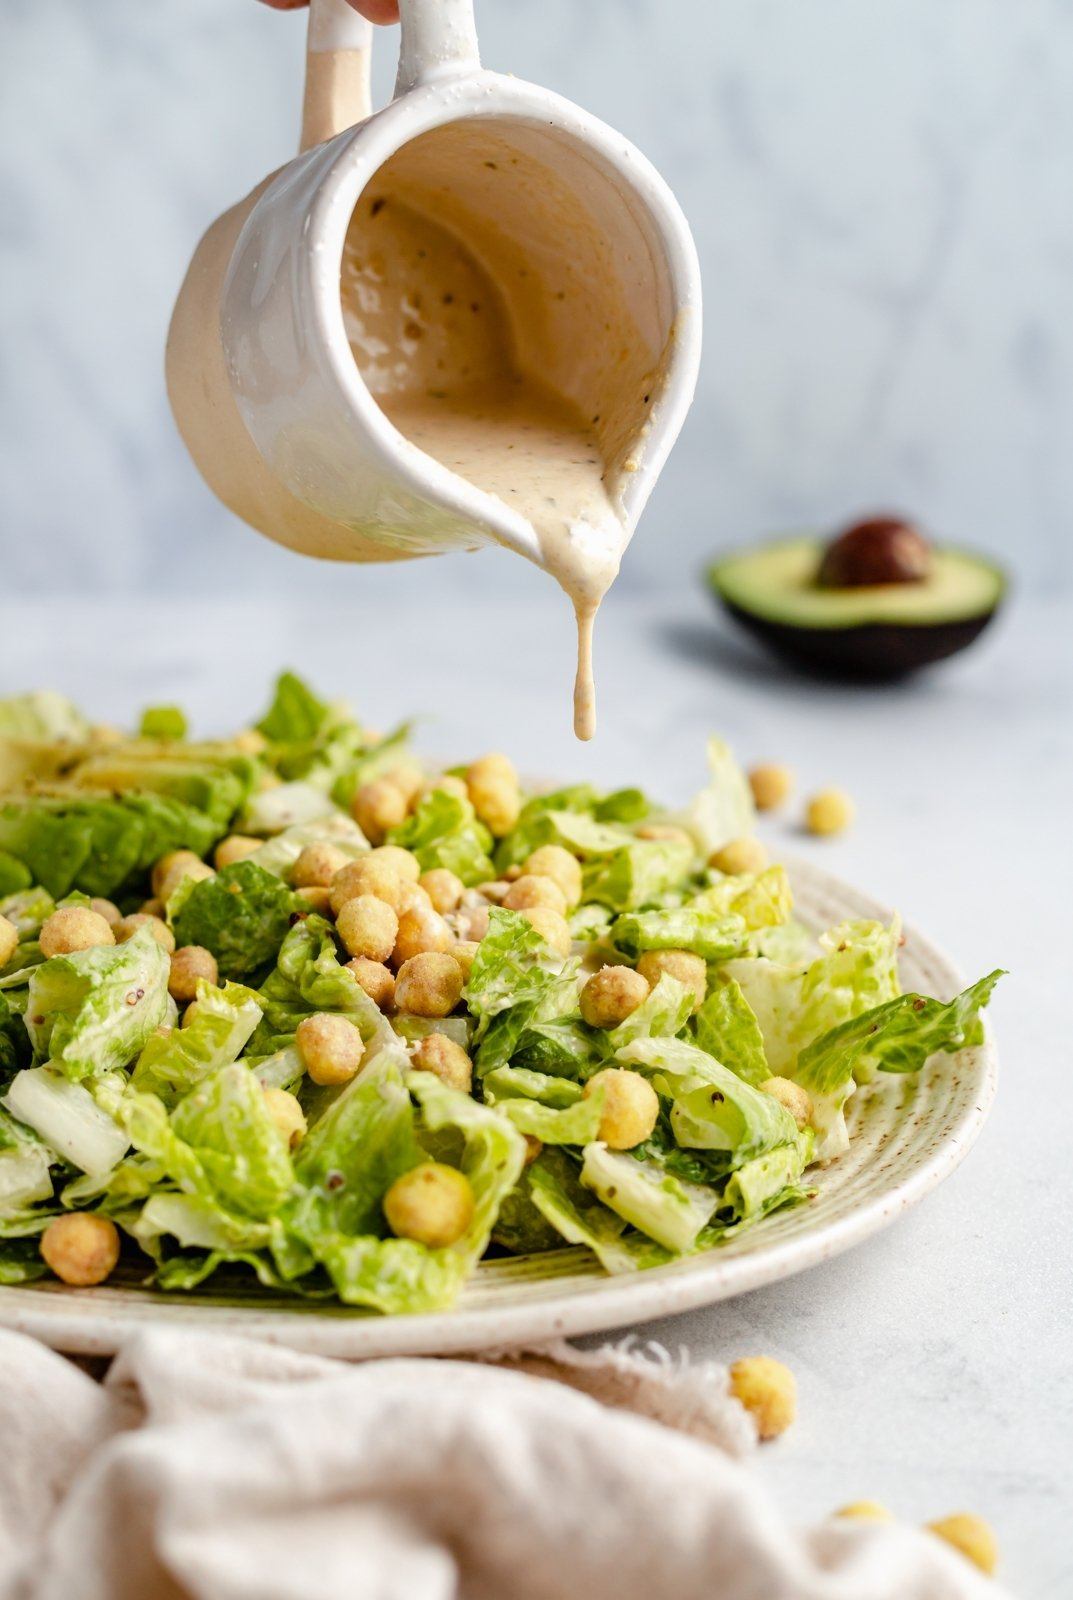 pouring dressing on a vegan caesar salad